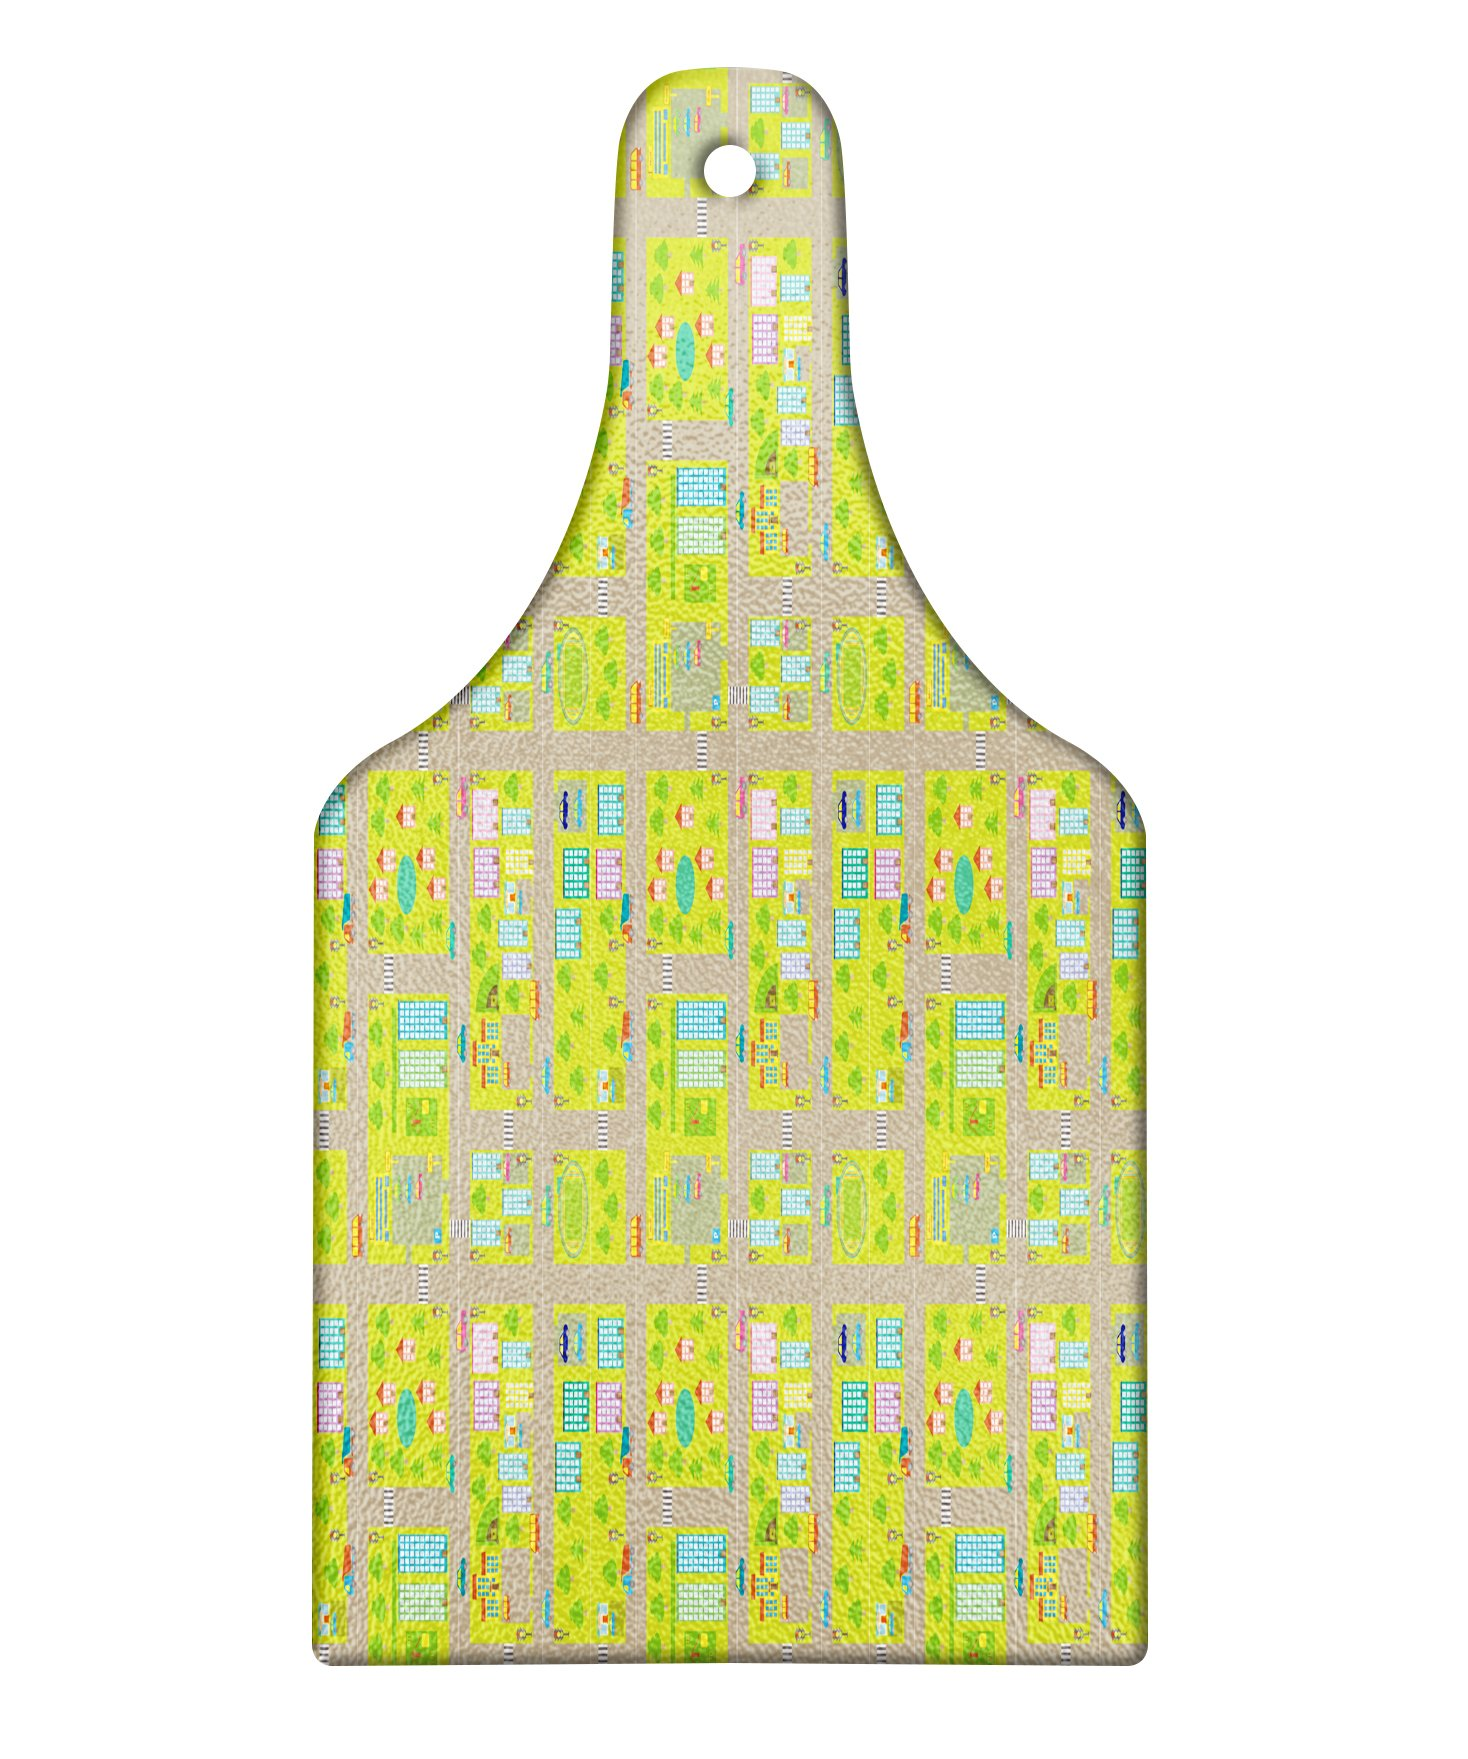 Lunarable Children's City Map Cutting Board, Blocks of Apartments Connected with Roads Mall Parking Lot and School, Decorative Tempered Glass Cutting and Serving Board, Wine Bottle Shape, Multicolor